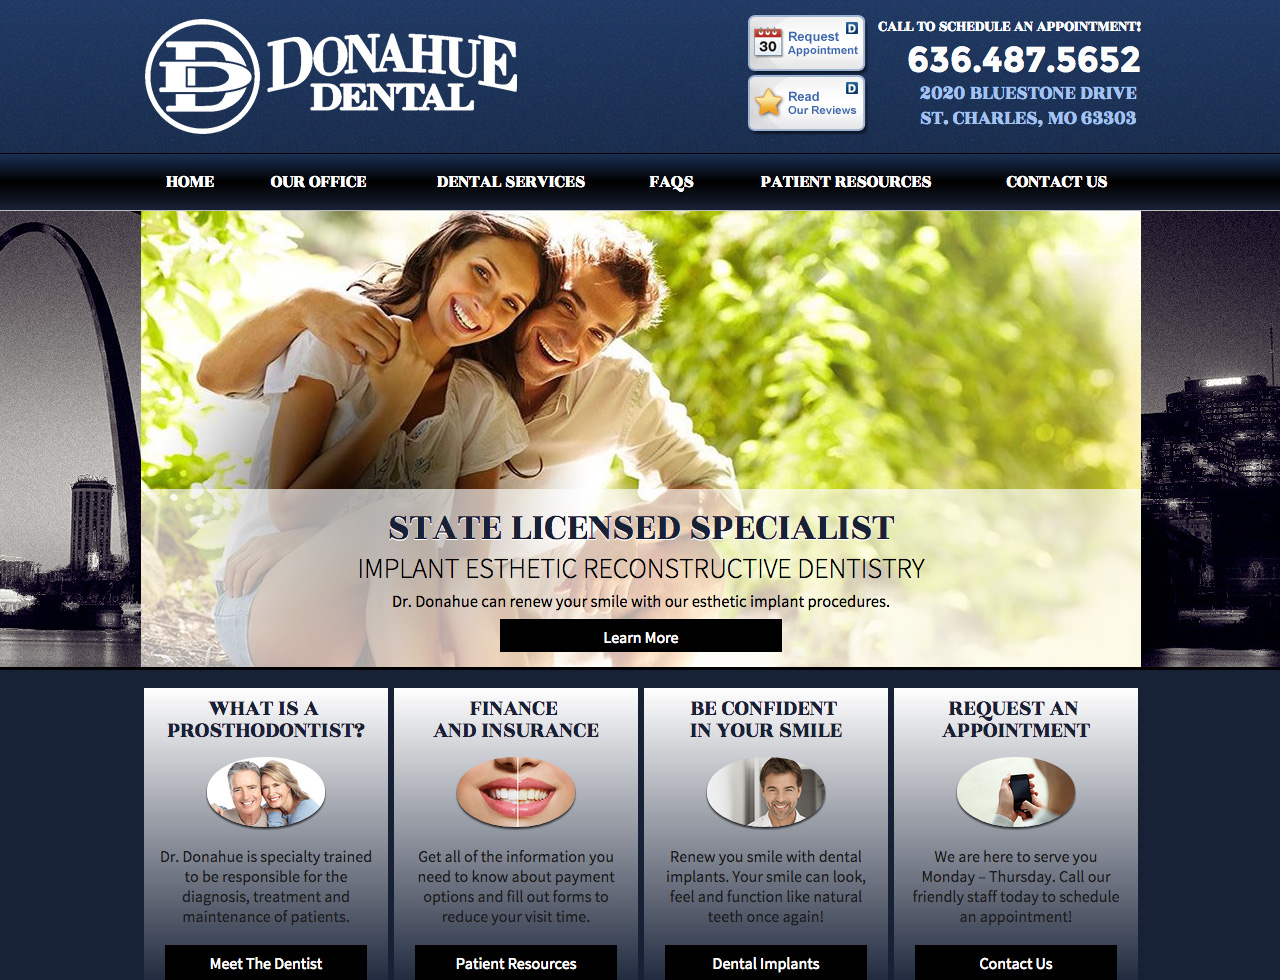 St. Louis Dentist Located in St. Charles - Donahue Dental